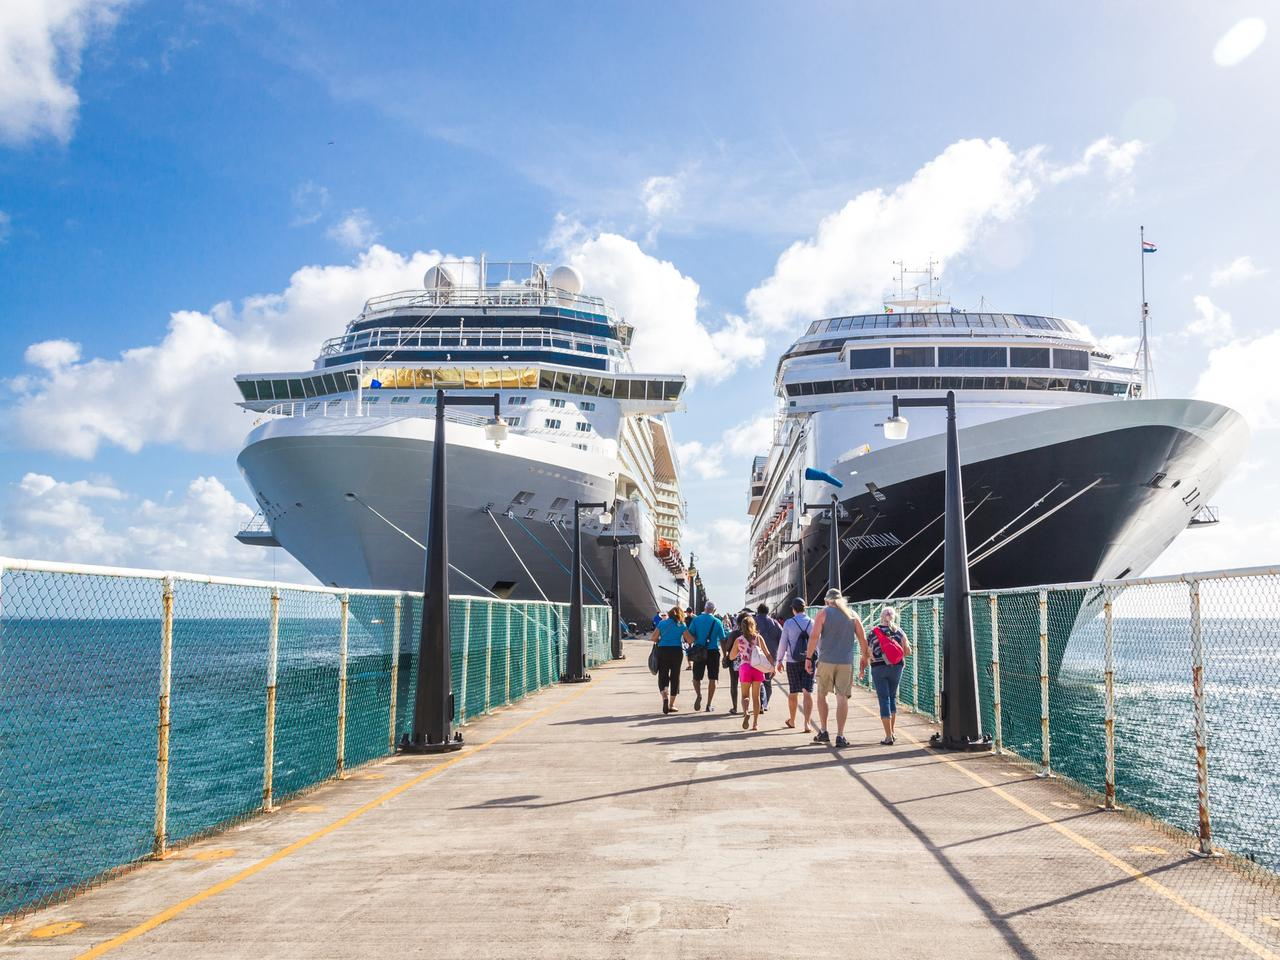 Cruise passengers return to cruise ships